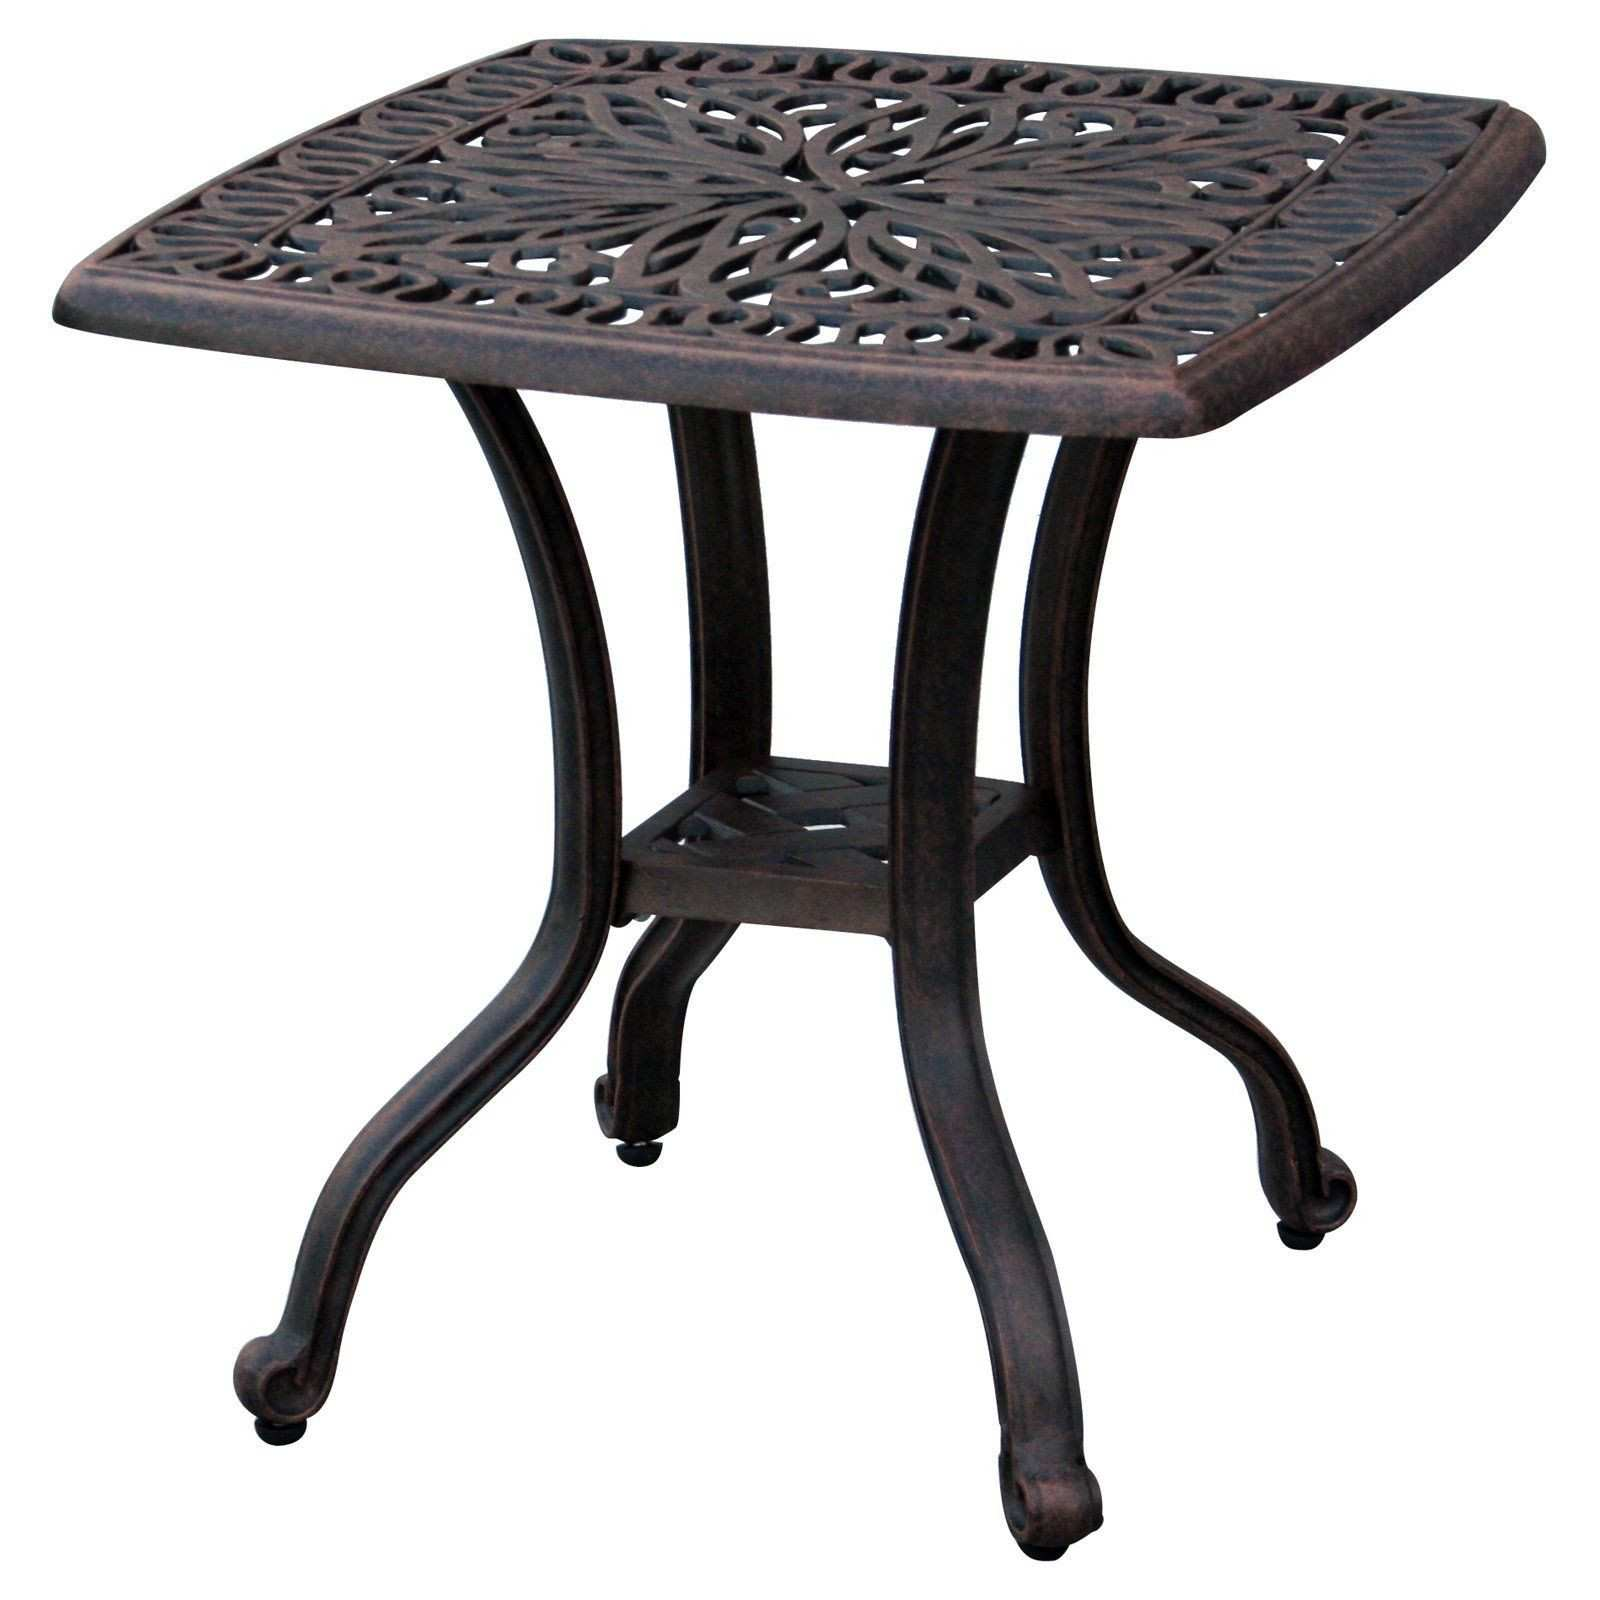 beautiful outdoor metal accent table for crescent contemporary awesome round rattan ott coffee formal living room black west elm dining pottery barn kids chairs small leaf tables